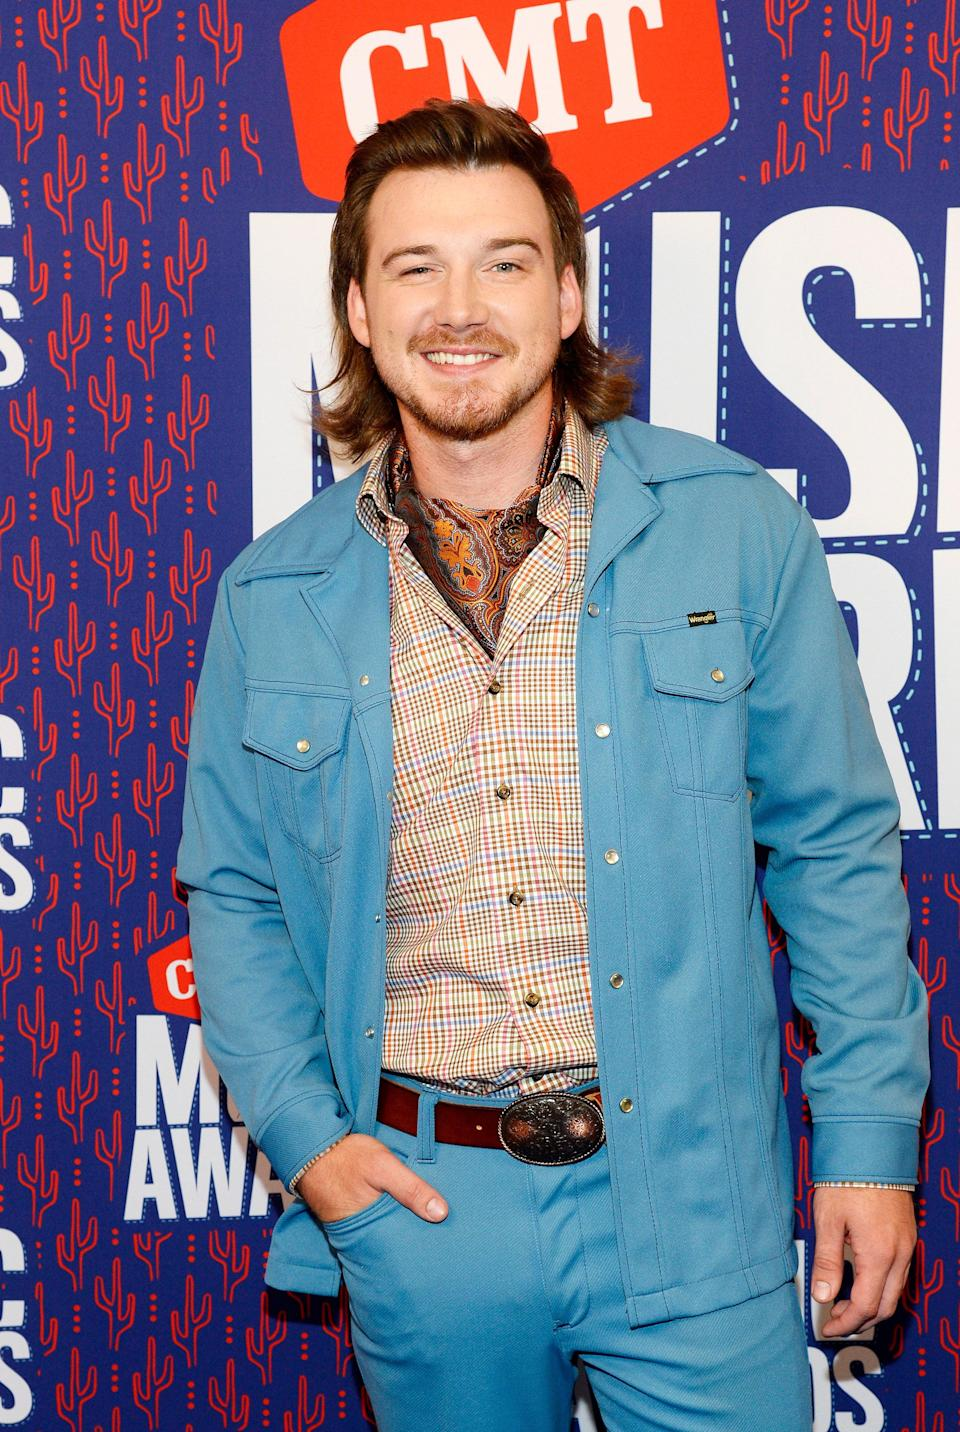 Morgan Wallen at the 2019 CMT Music Awards (Getty Images for CMT)